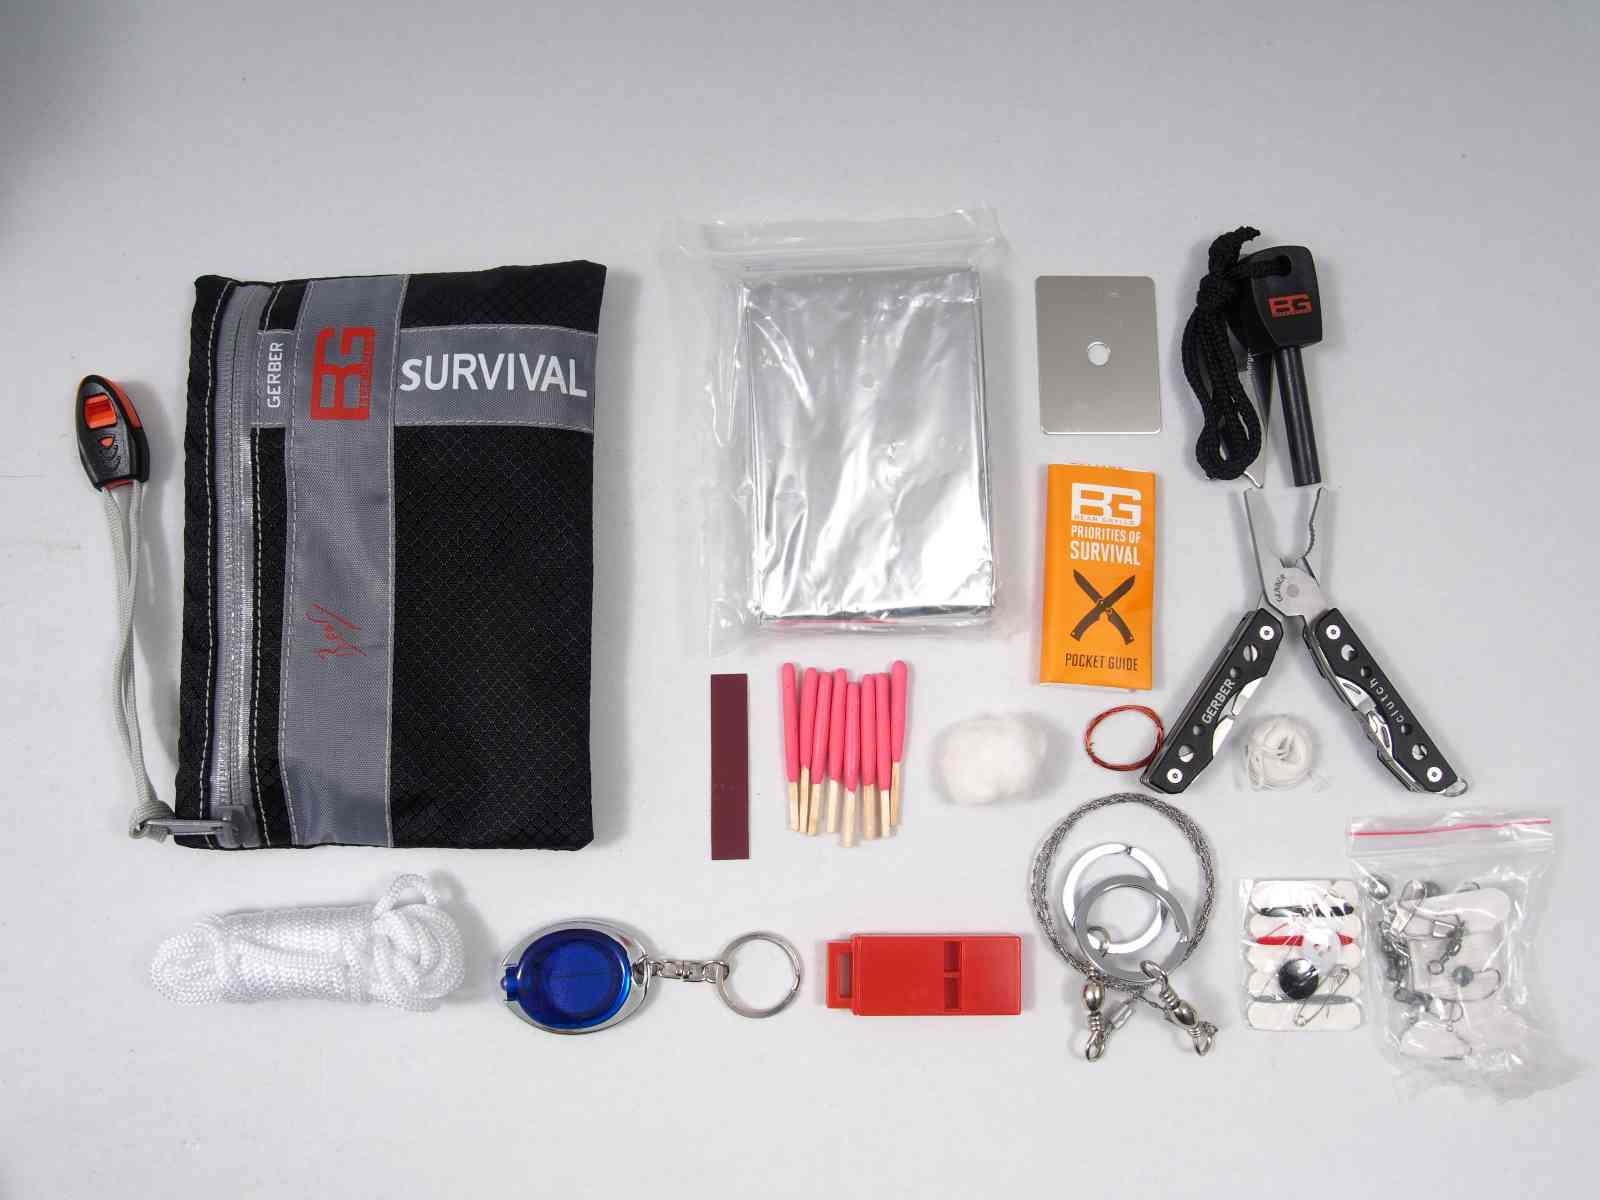 Gerber Bear Grylls Ultimate Survival Kit - Inhalt